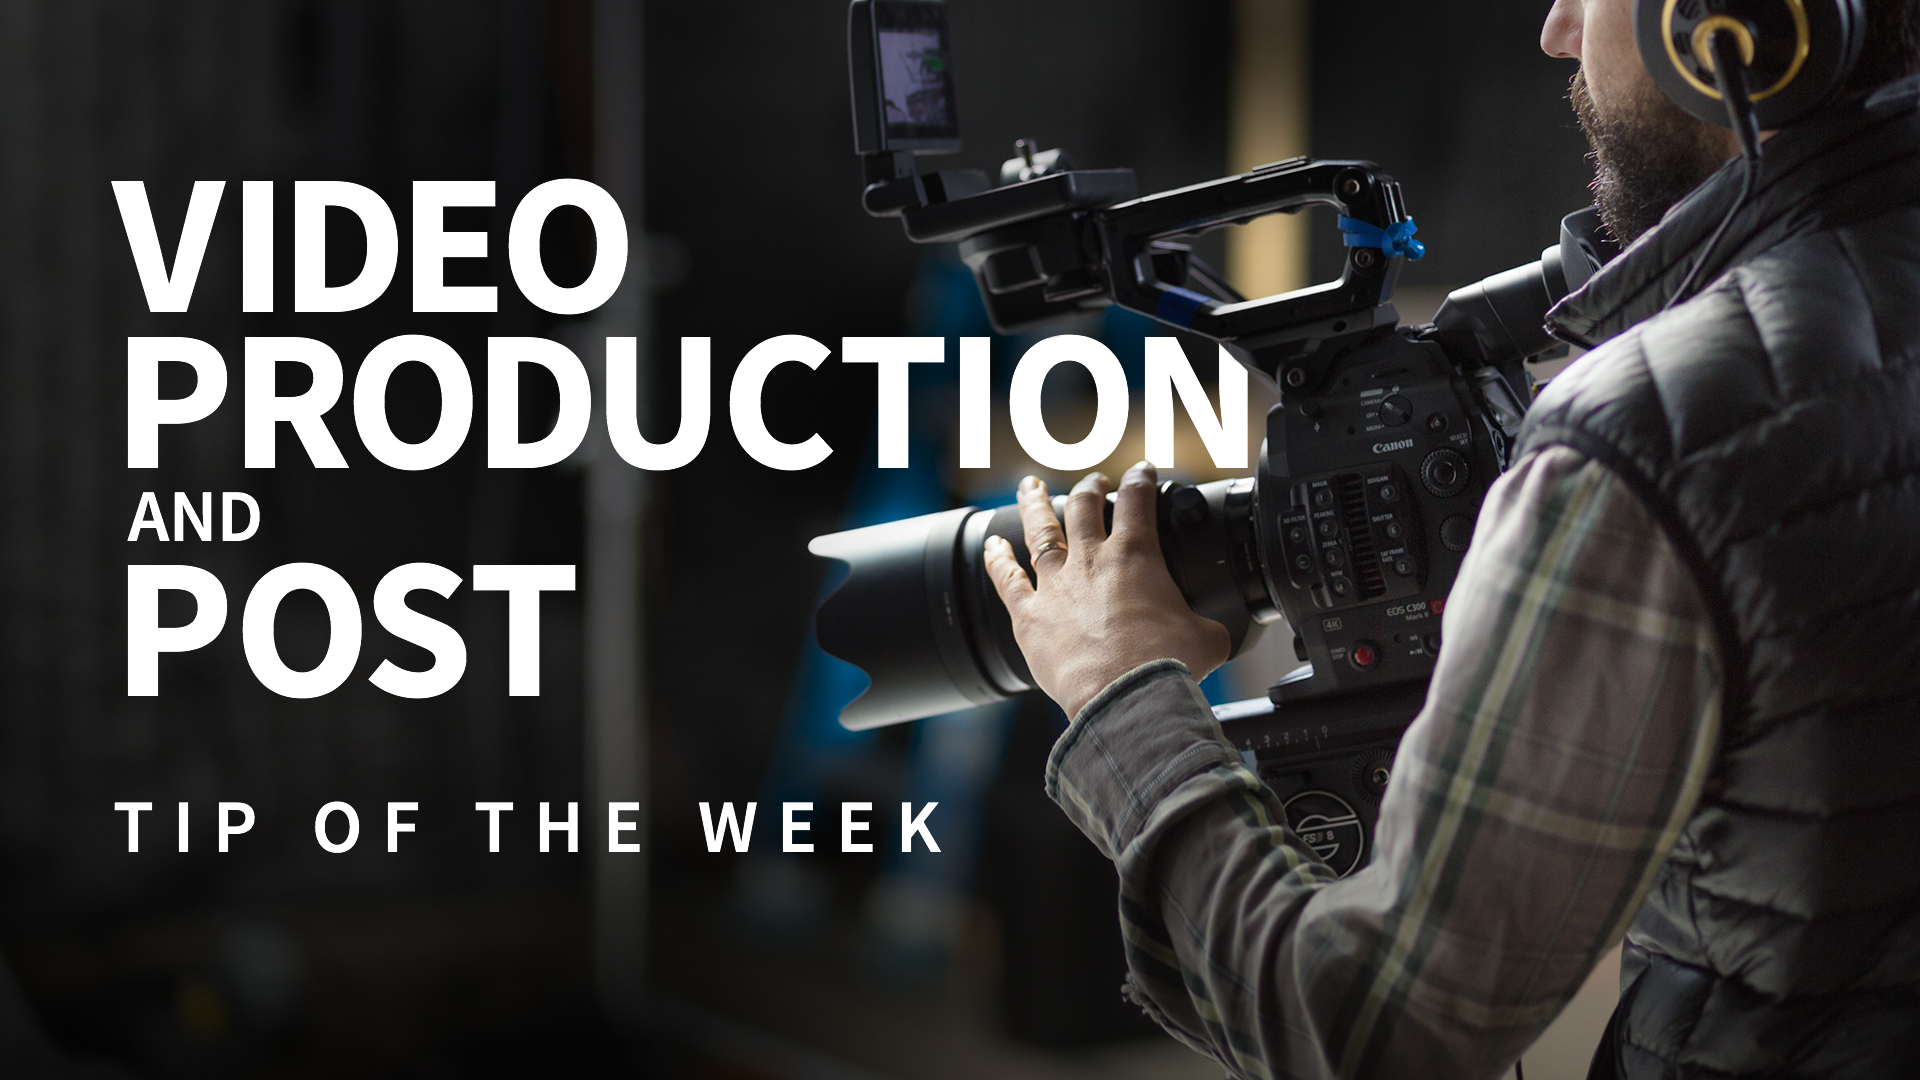 Recording log mode in camera: Video Production and Post Tip of the Week